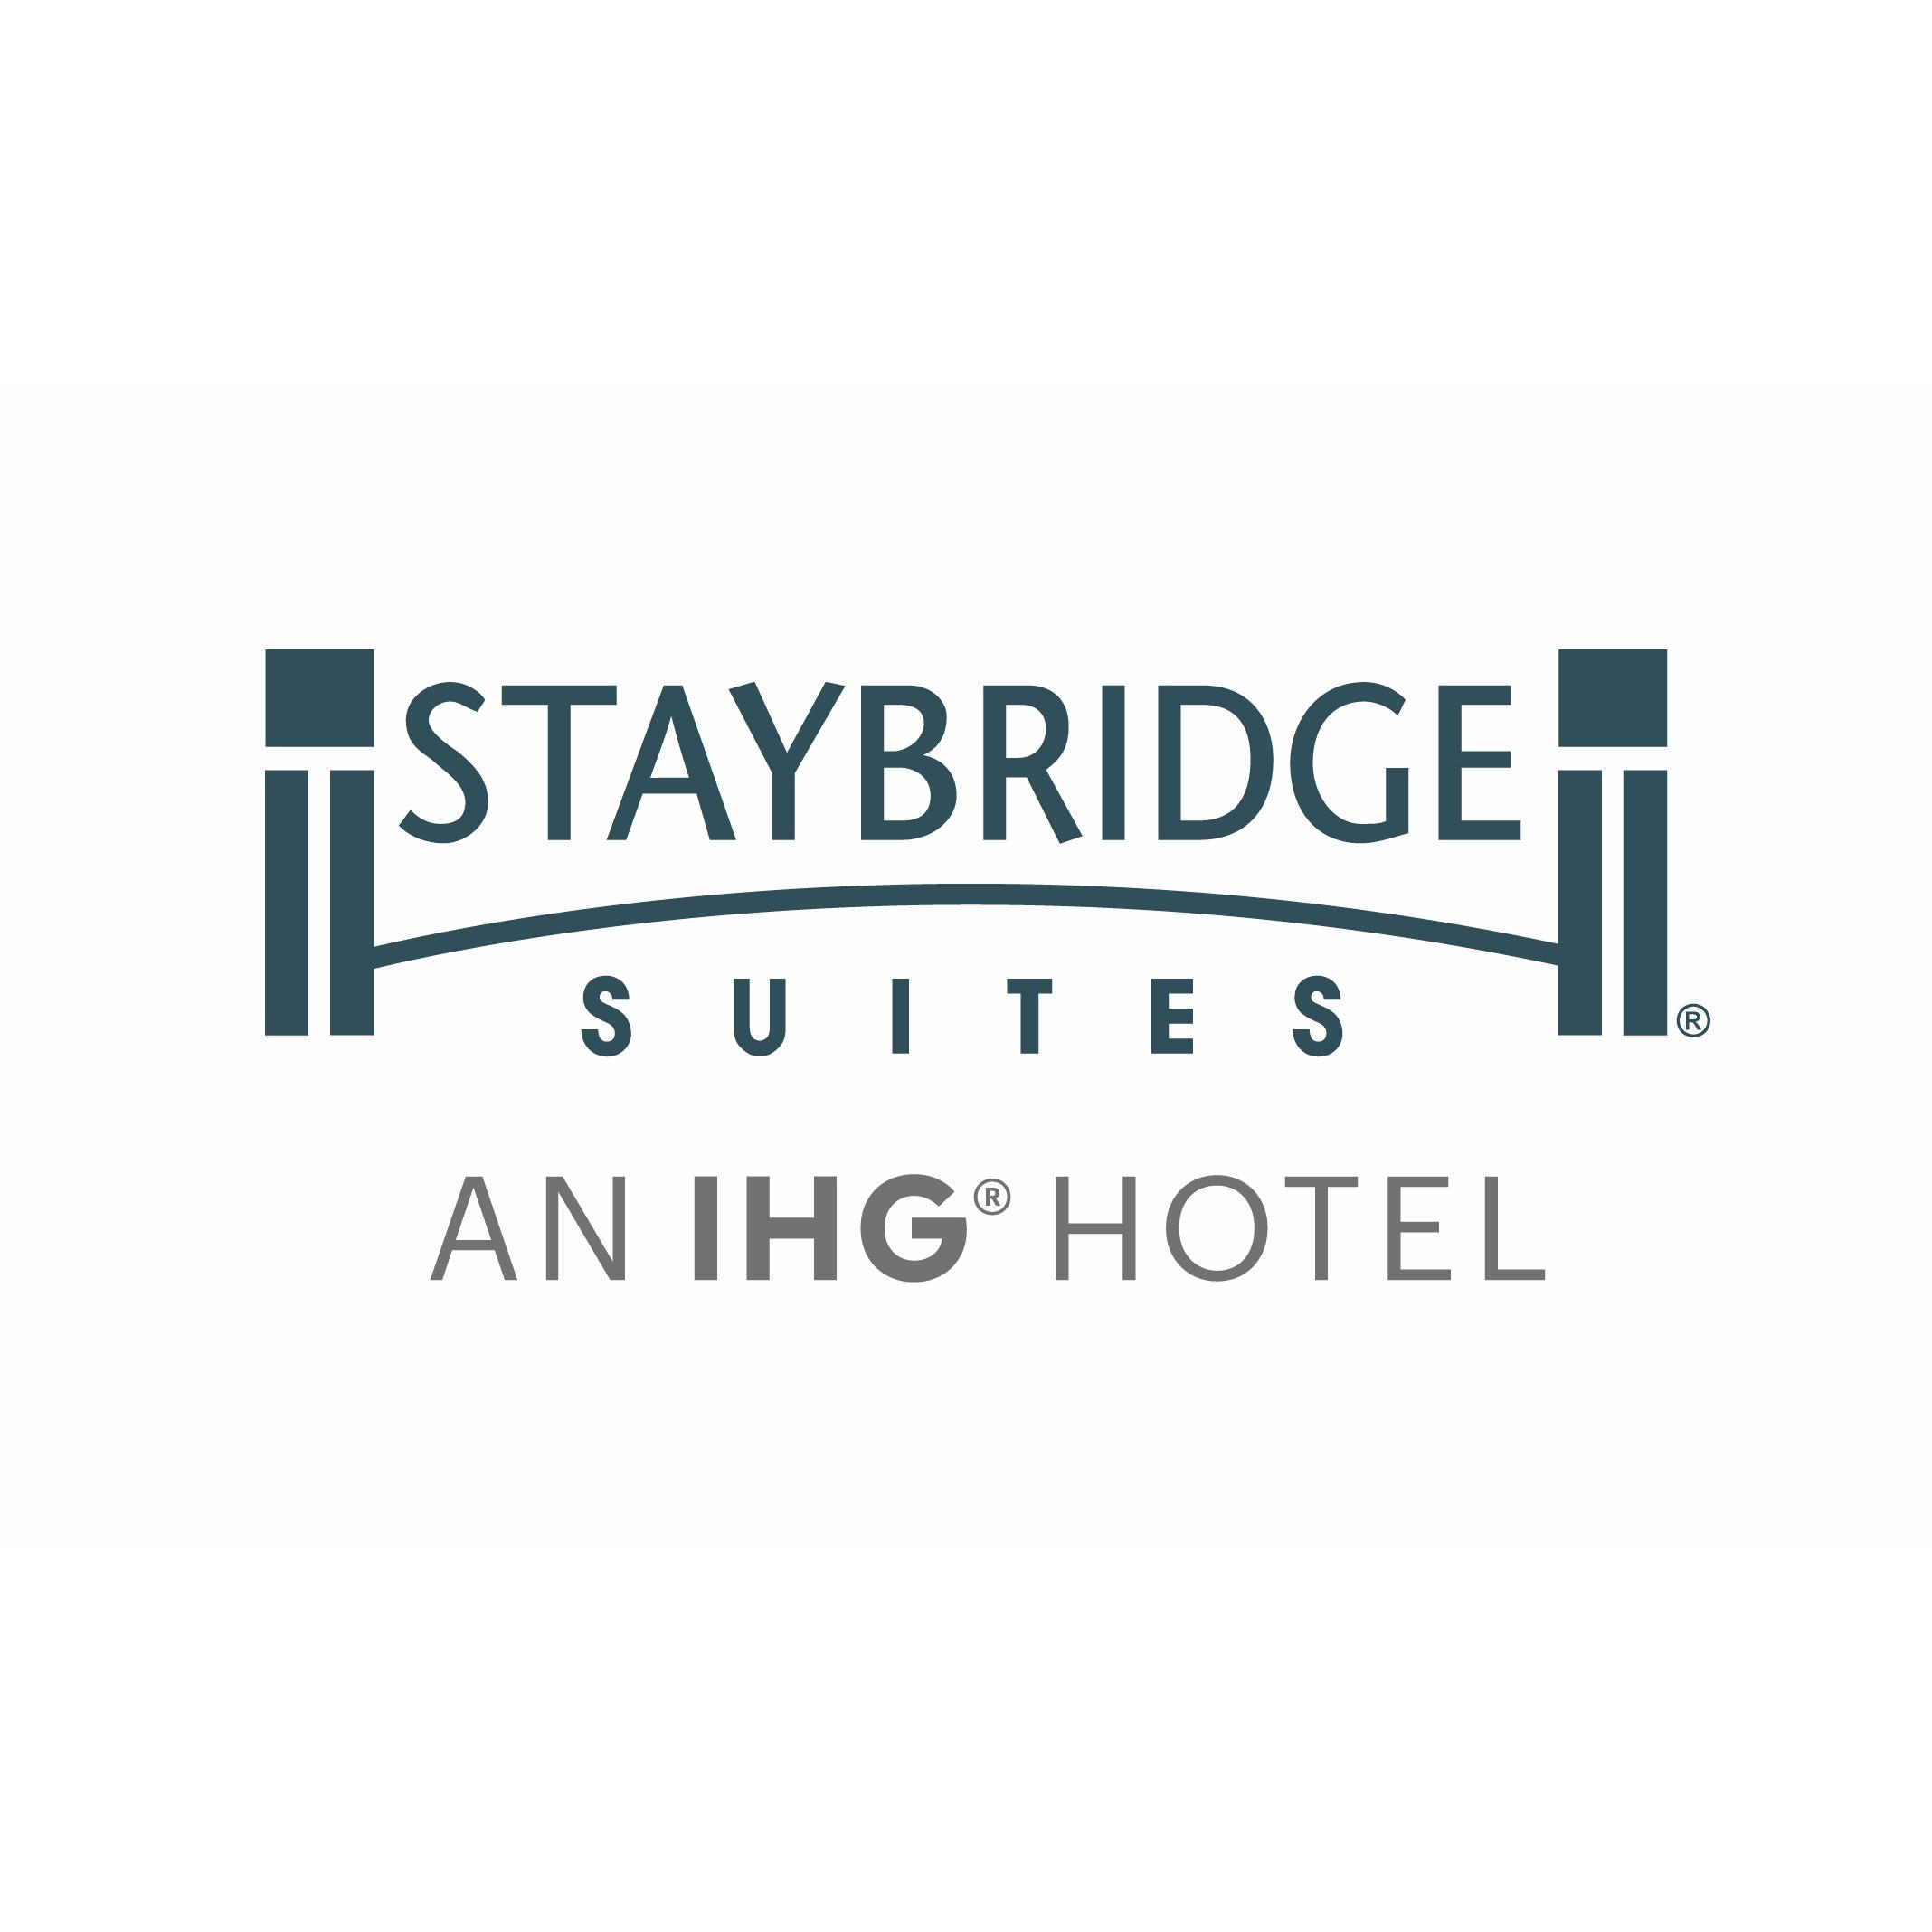 Staybridge Suites Atlanta-Buckhead - Atlanta, GA - Hotels & Motels